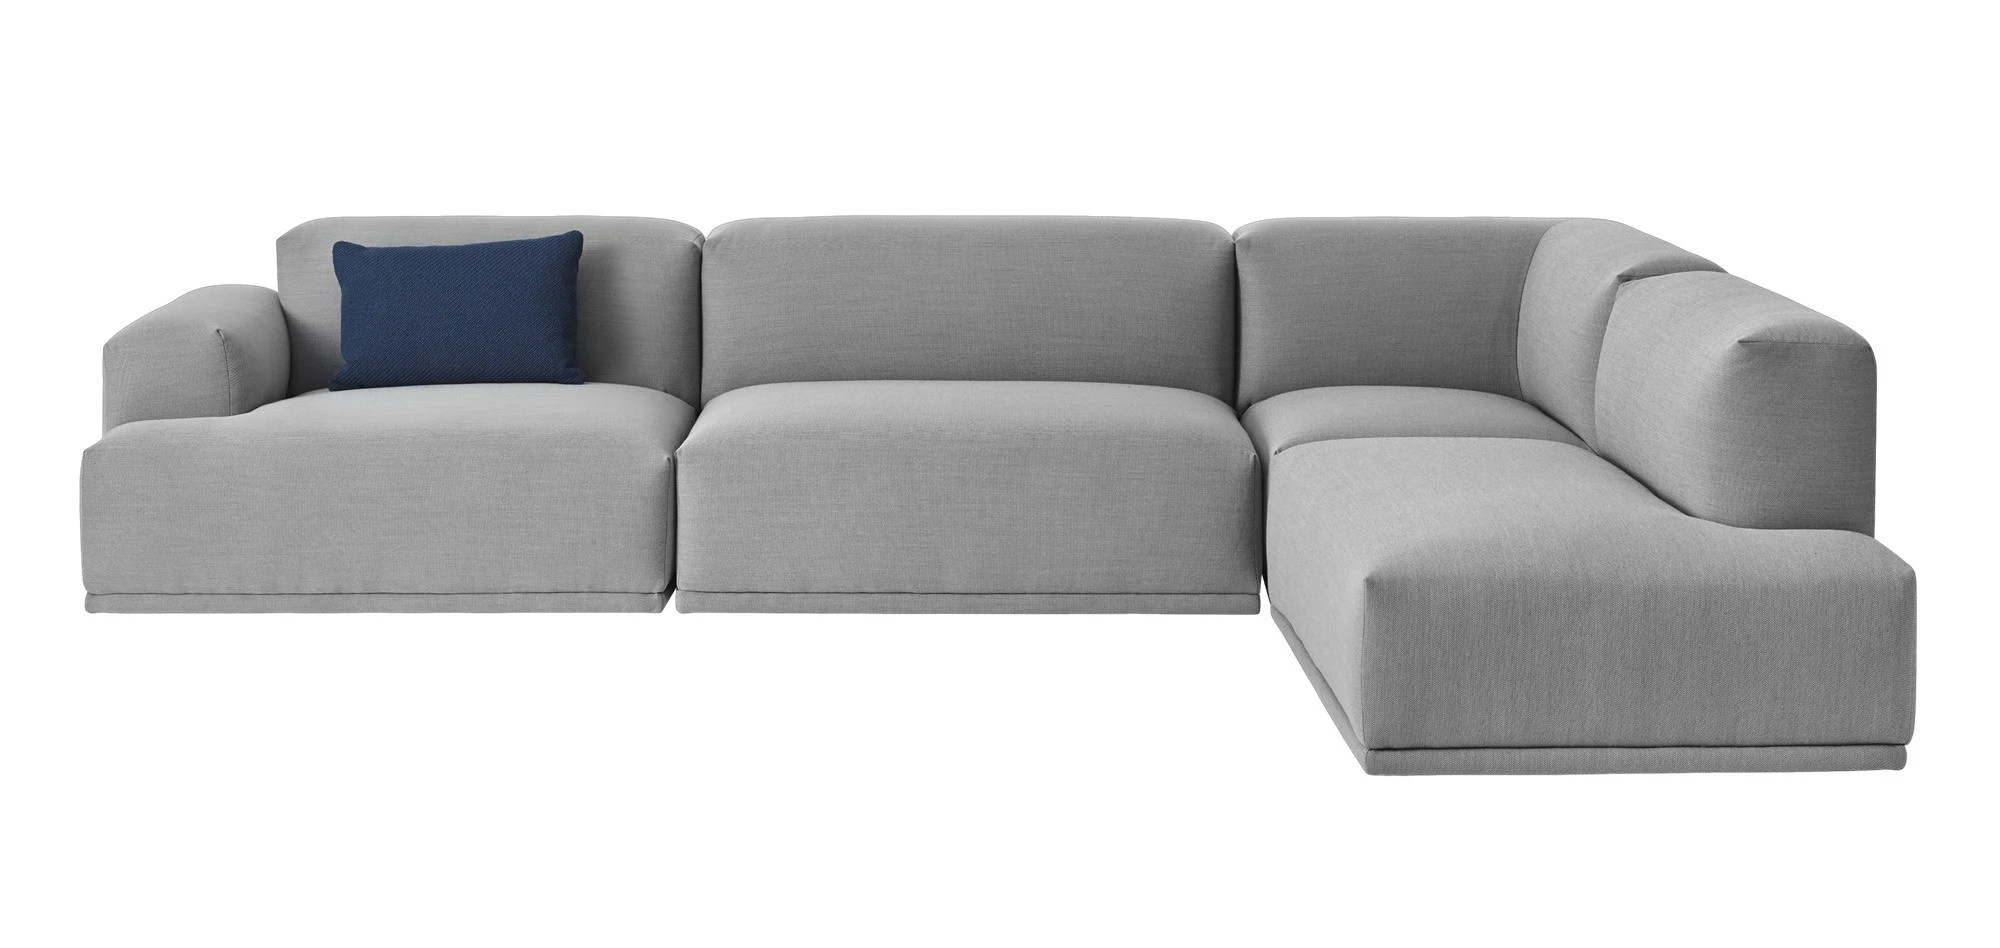 Modular Sofa Muuto Connect Modular Sofa Gr Shop Canada